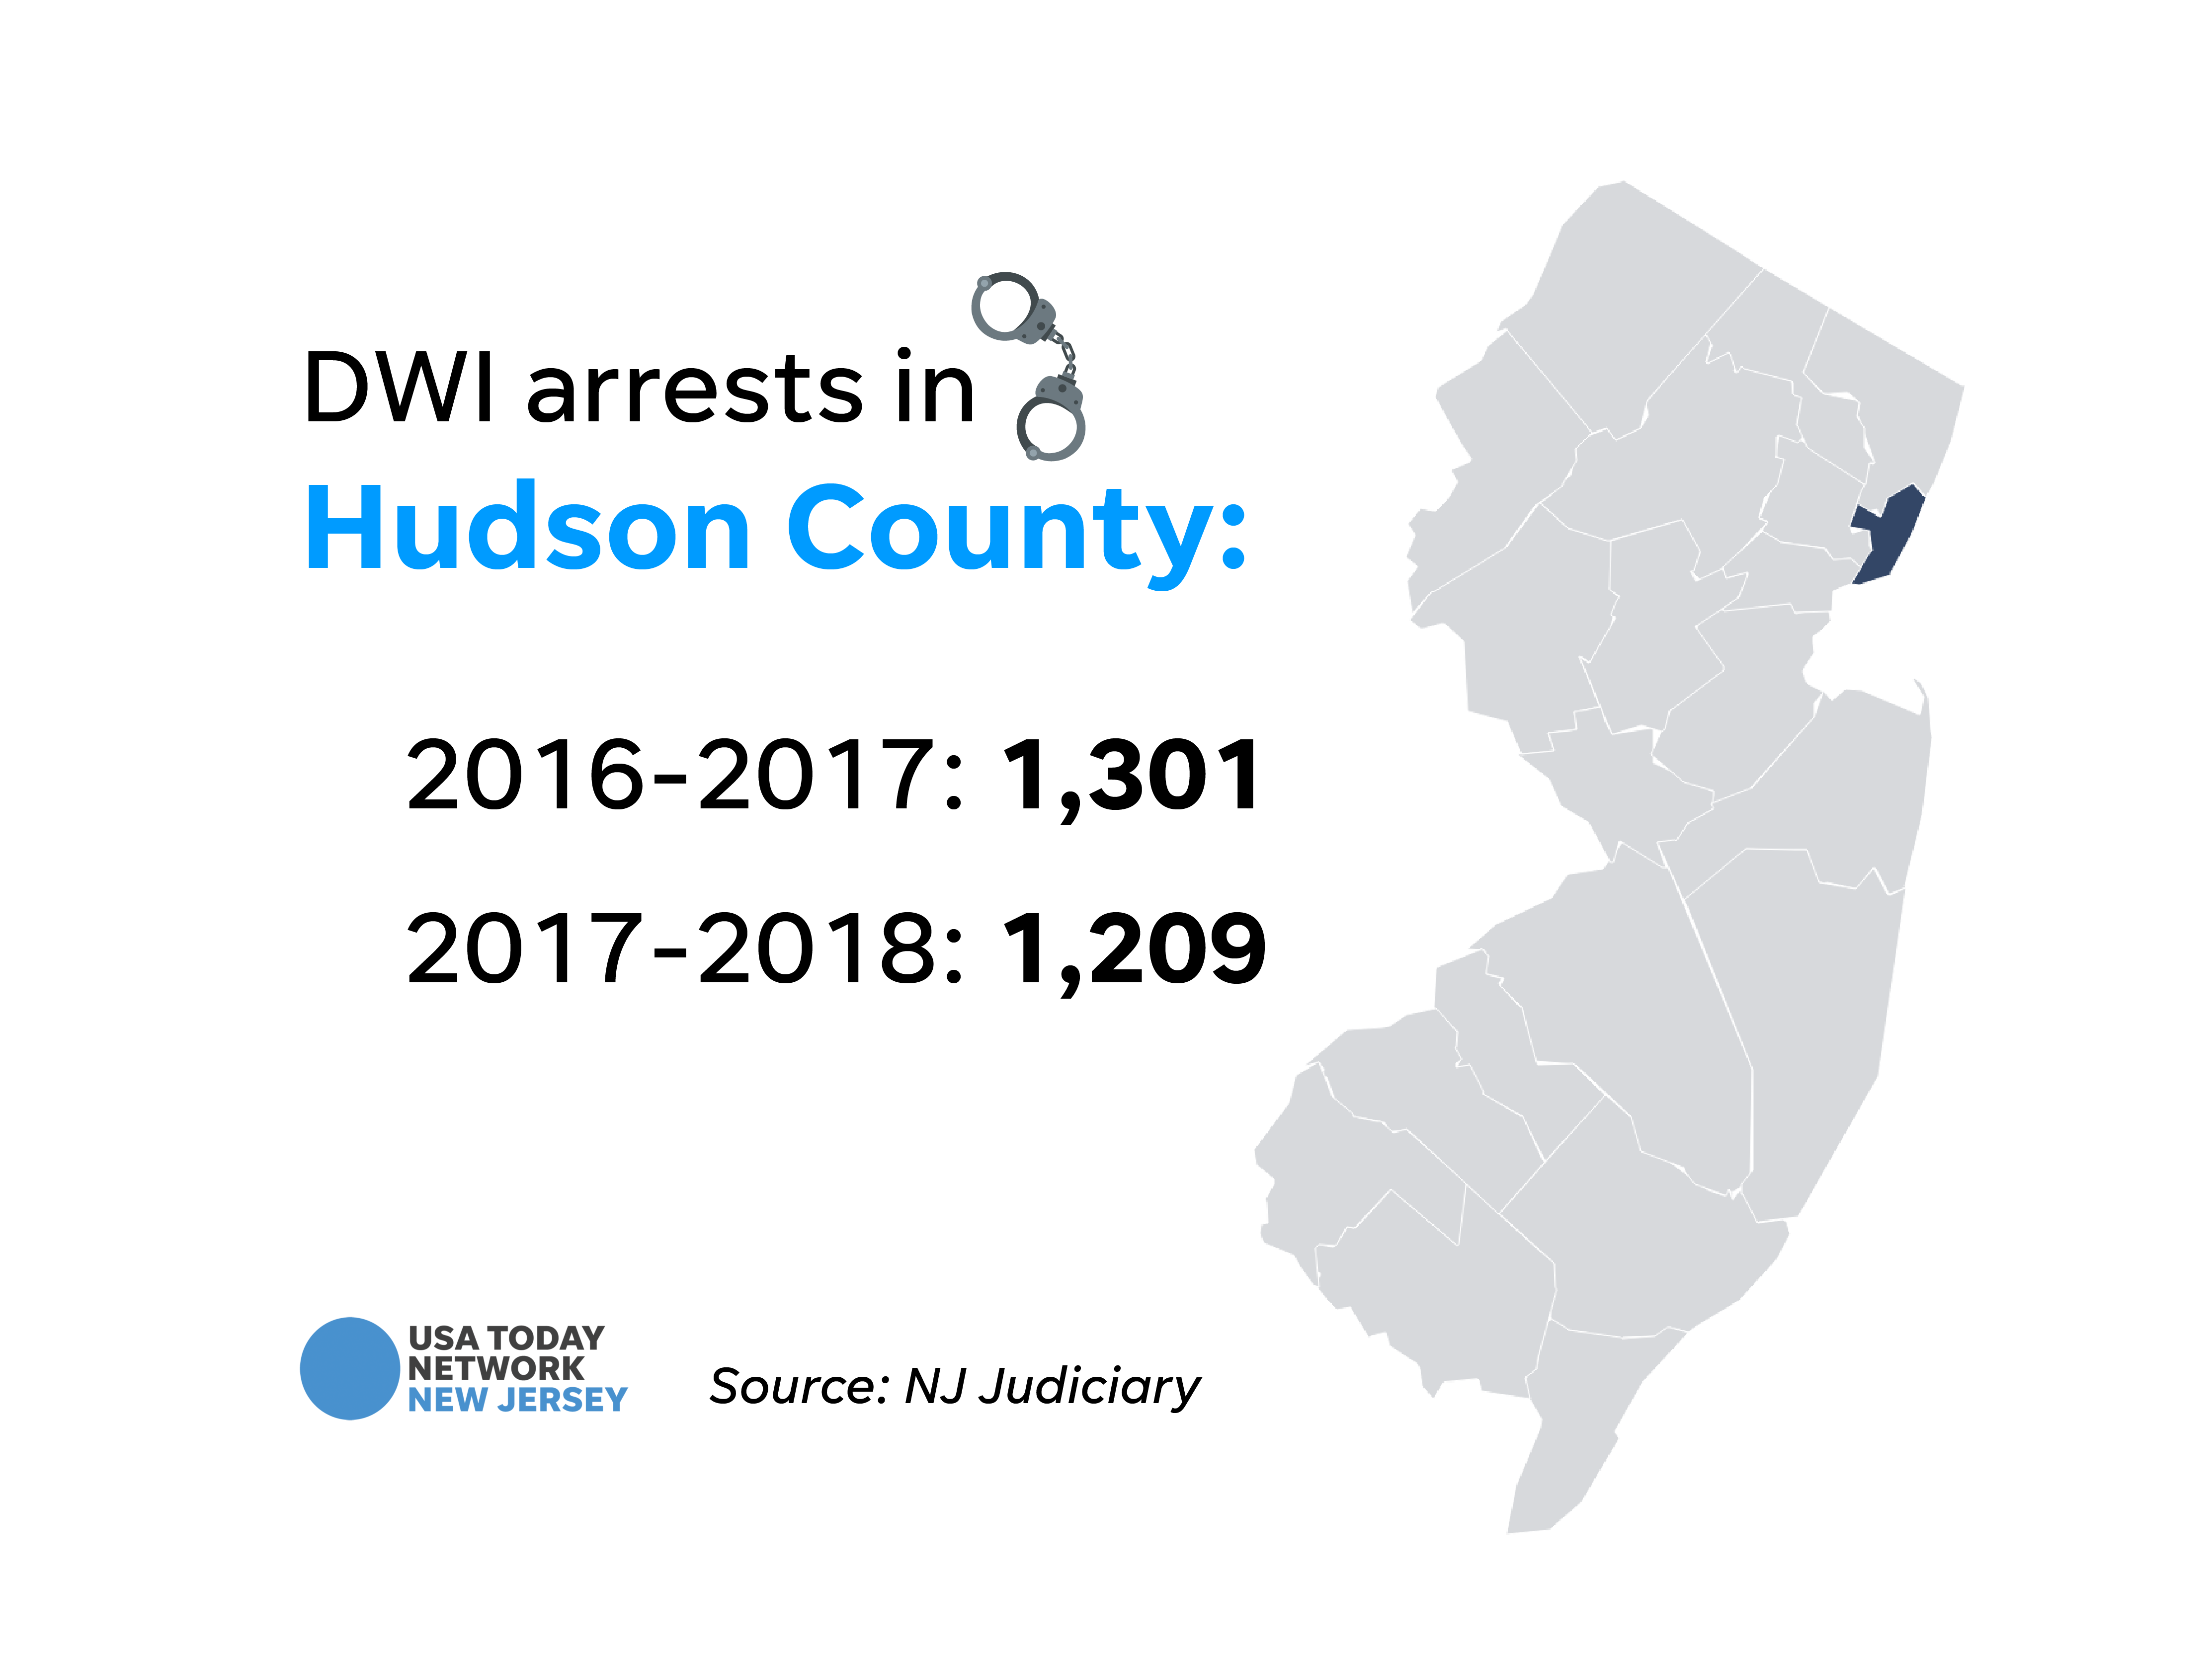 DWI arrests in Hudson County.